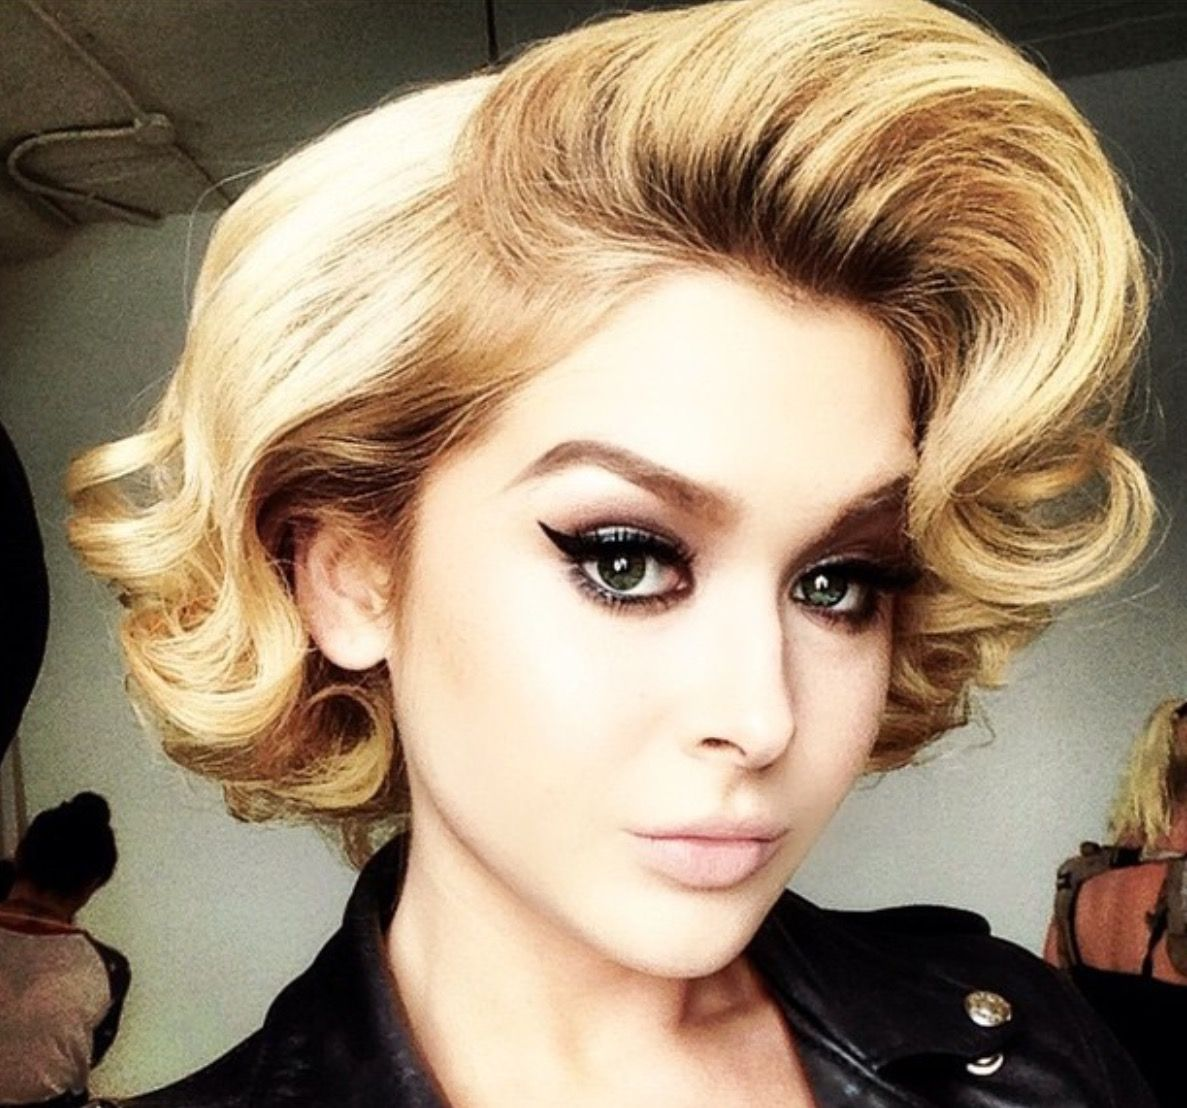 pin by evie too on hair! in 2019 | rockabilly hair, vintage